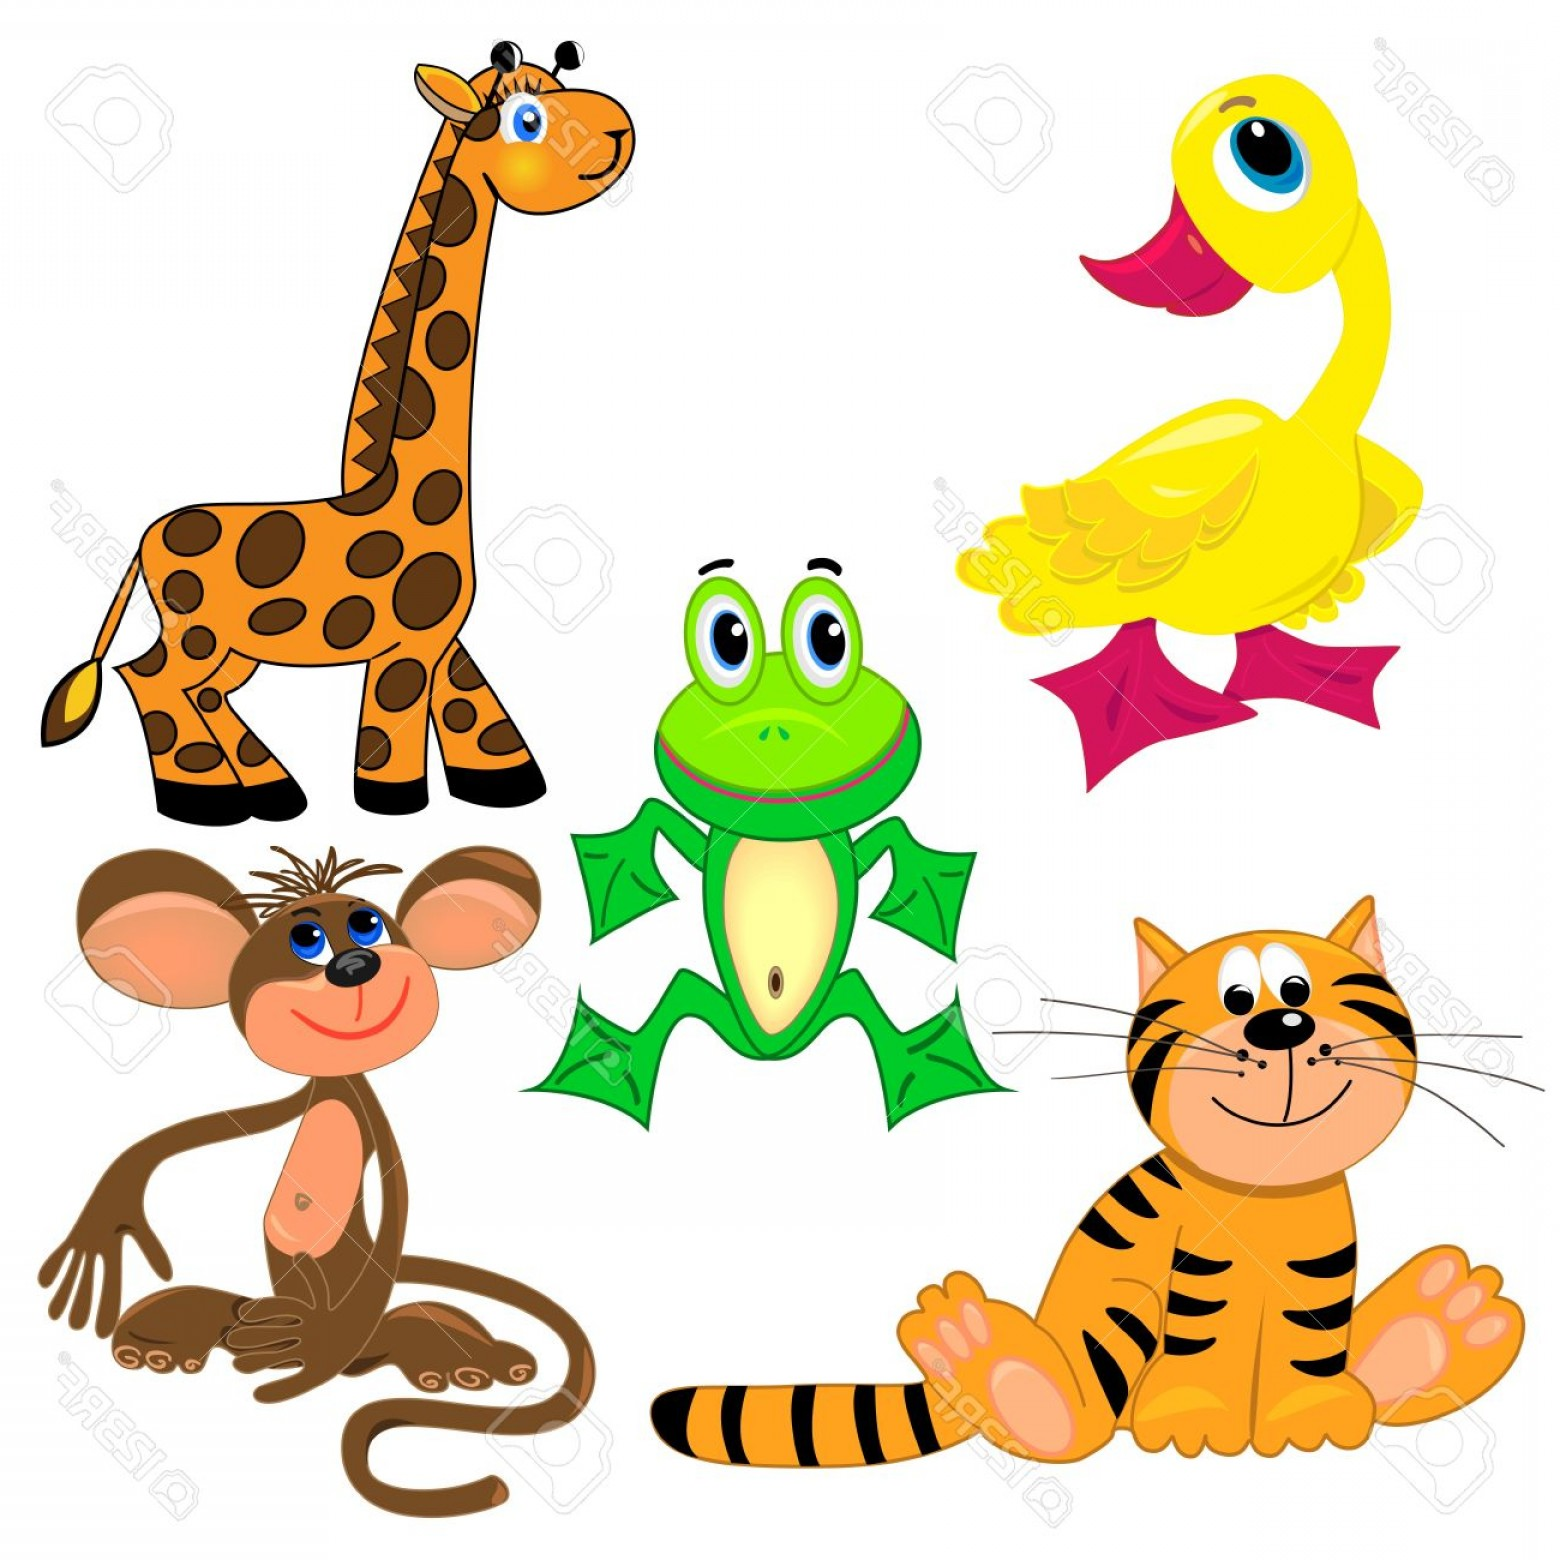 1560x1560 Photoset Of Zoo Animals Vector Illustration Cute Characters